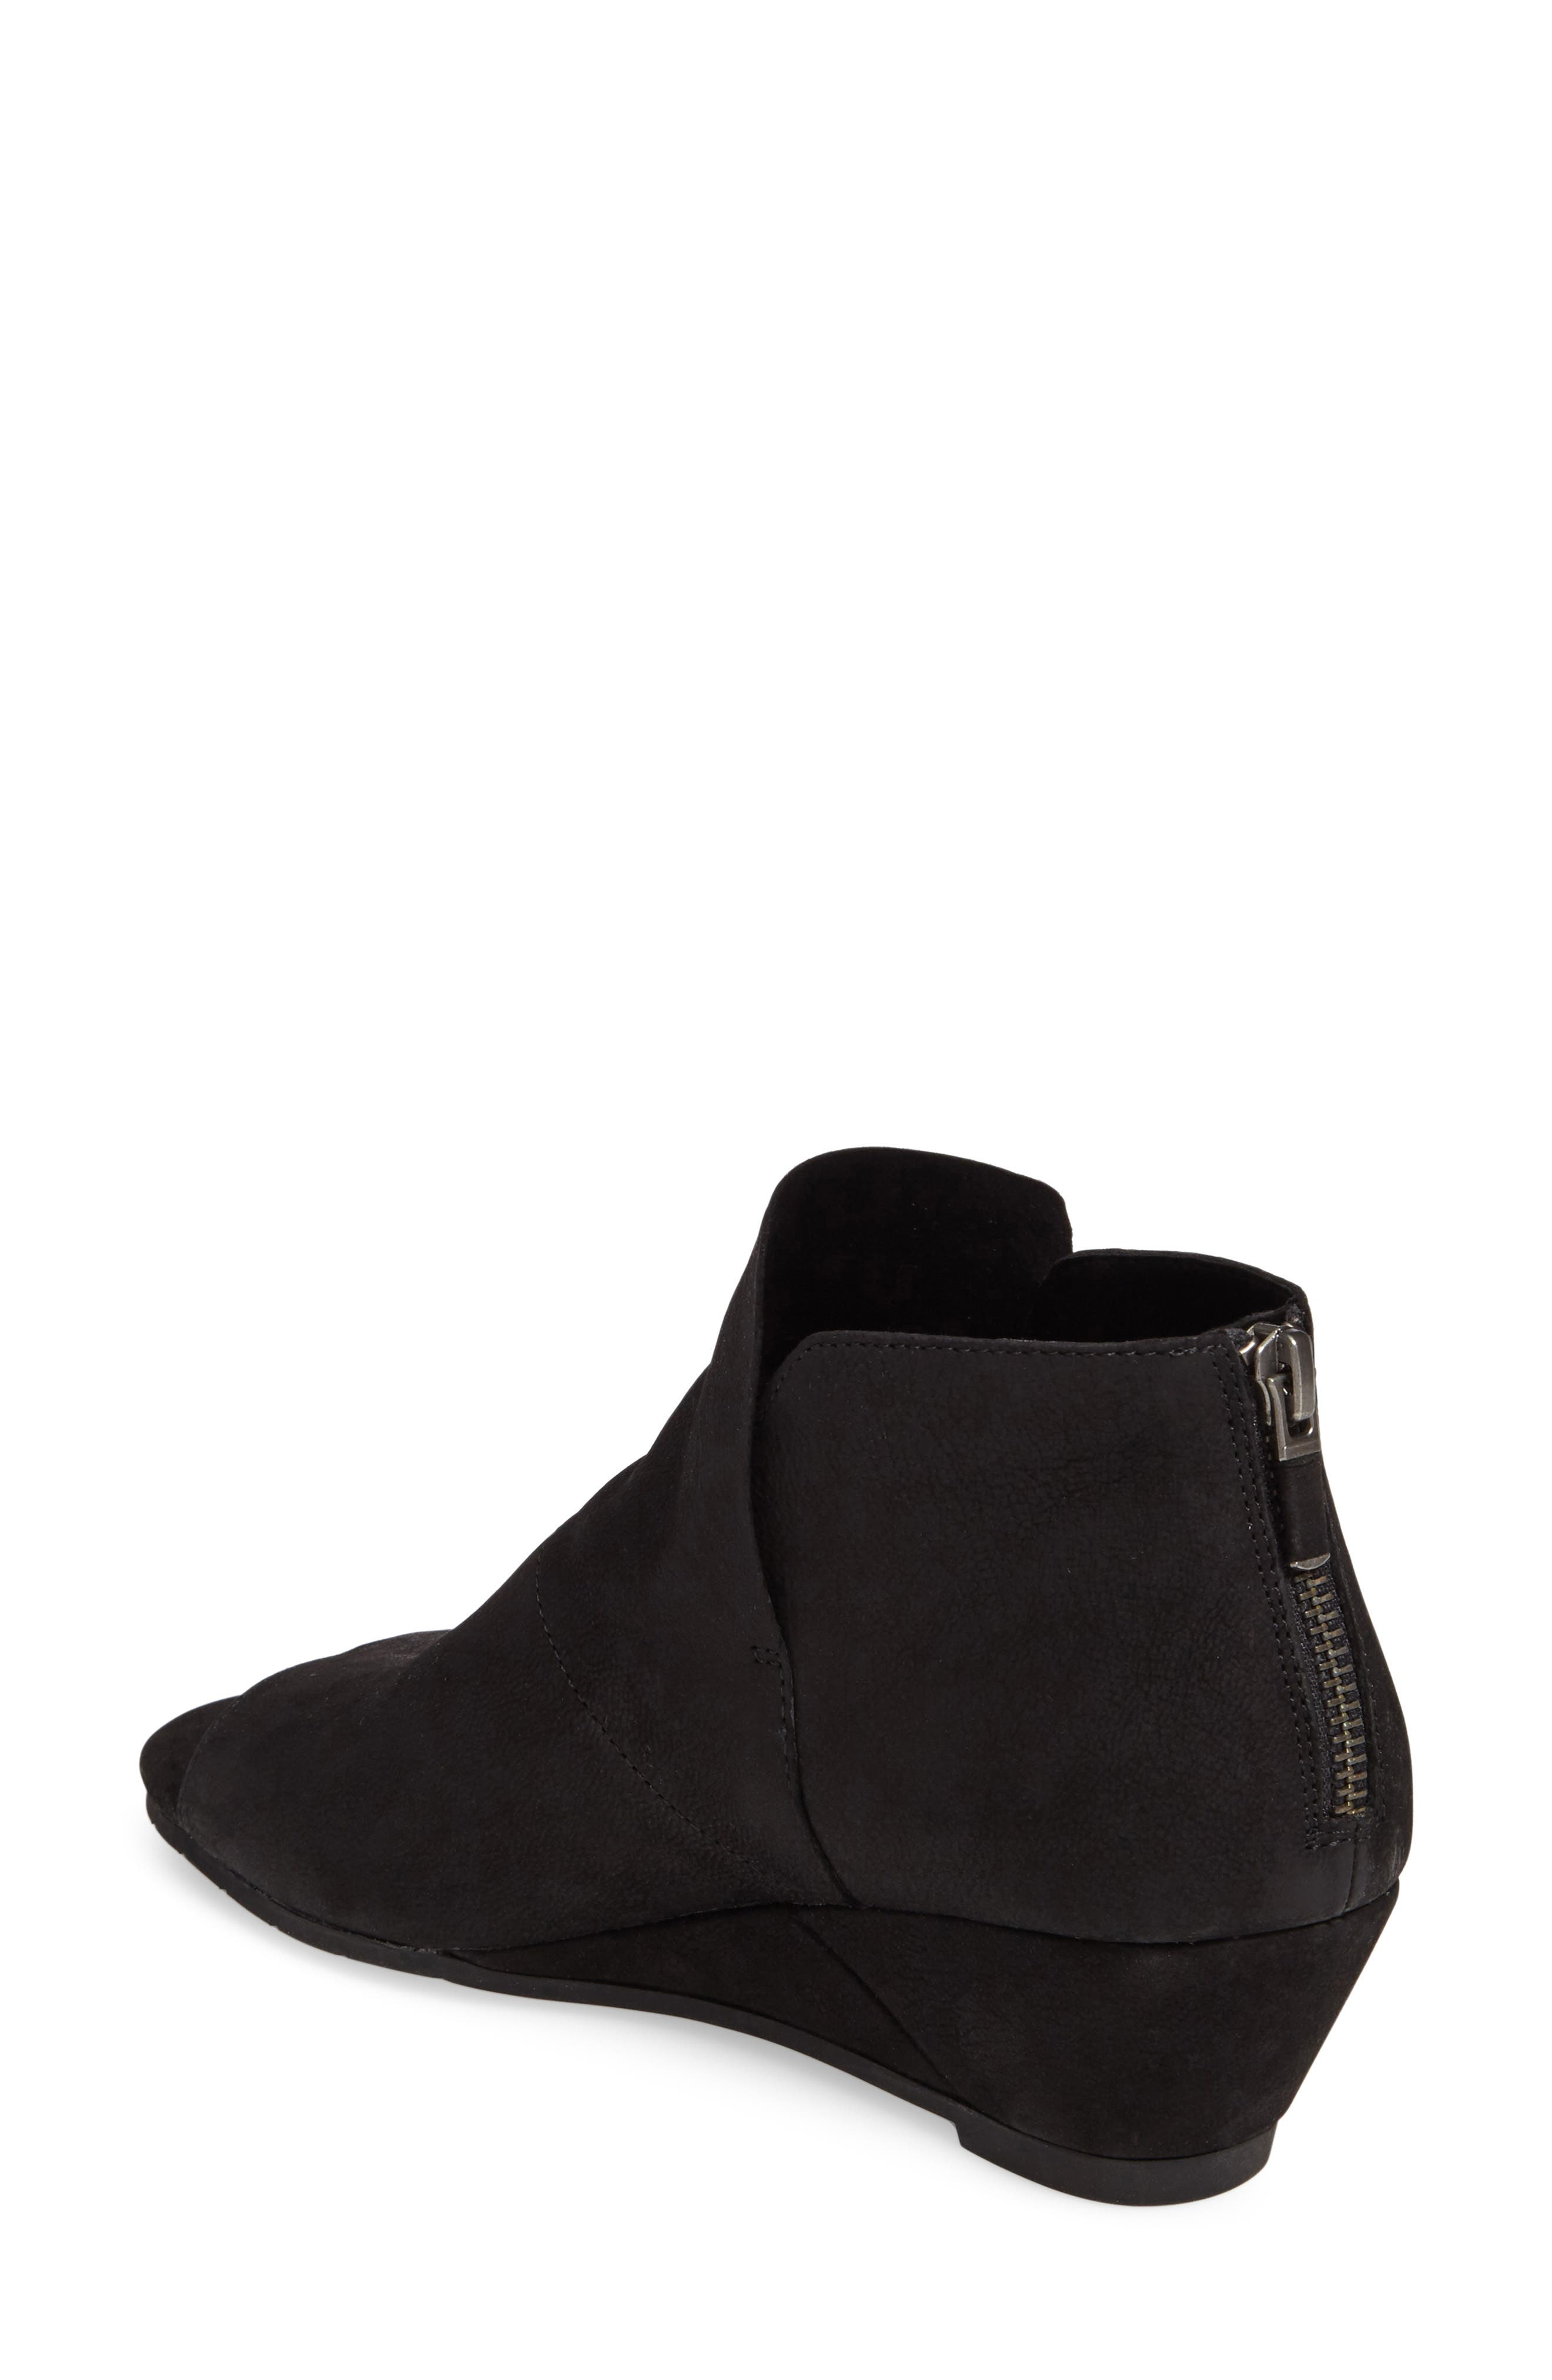 Duffy Open Toe Wedge Bootie,                             Alternate thumbnail 2, color,                             001